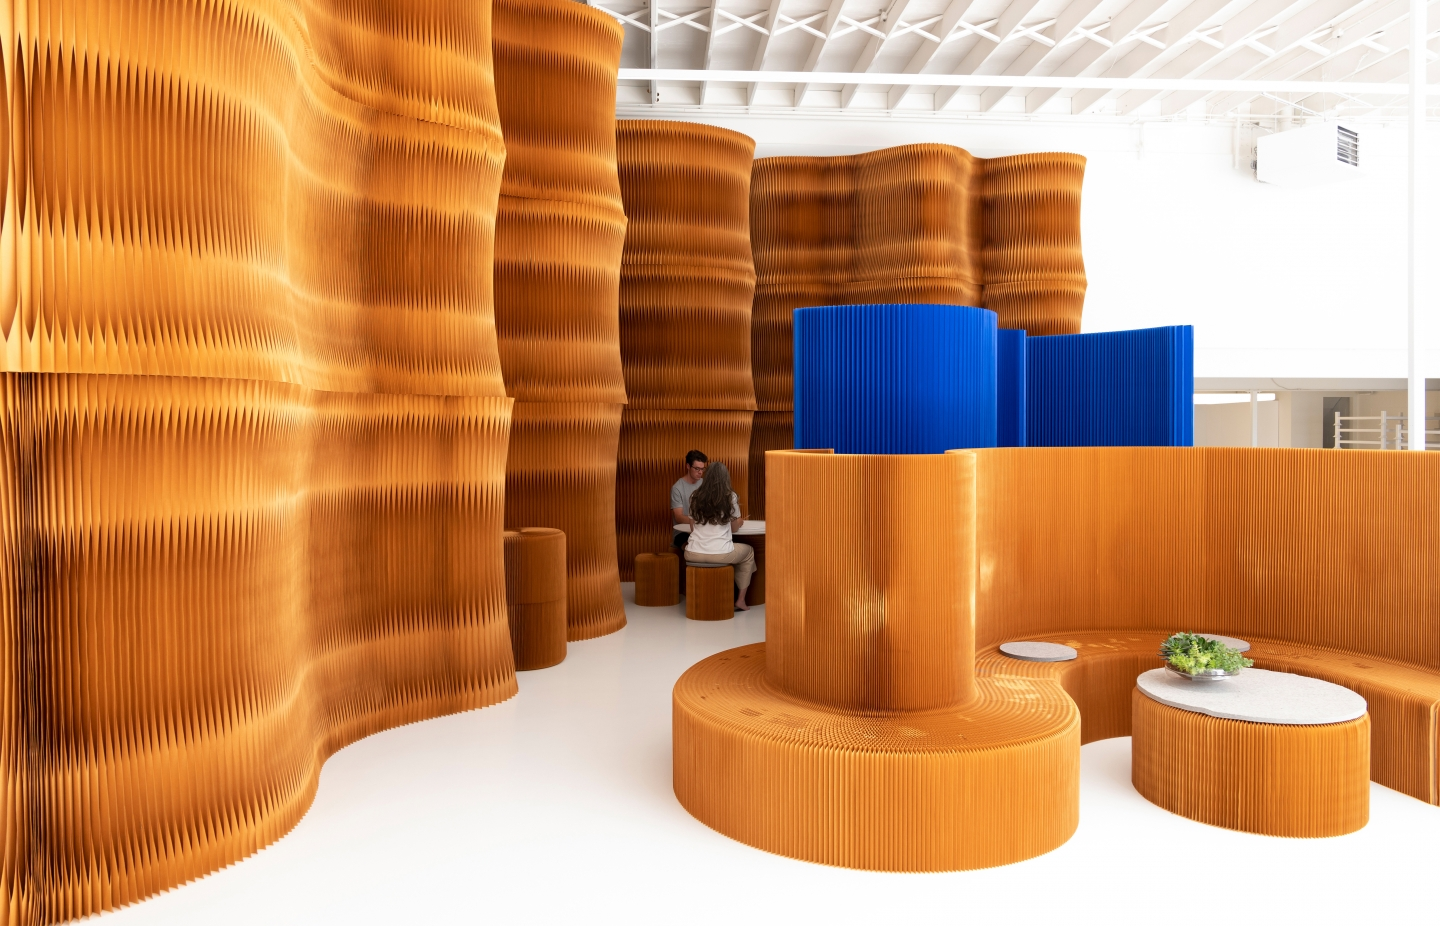 paper furniture exhibit at orgatec 2018 - molo's highbacked seating and paper softwall